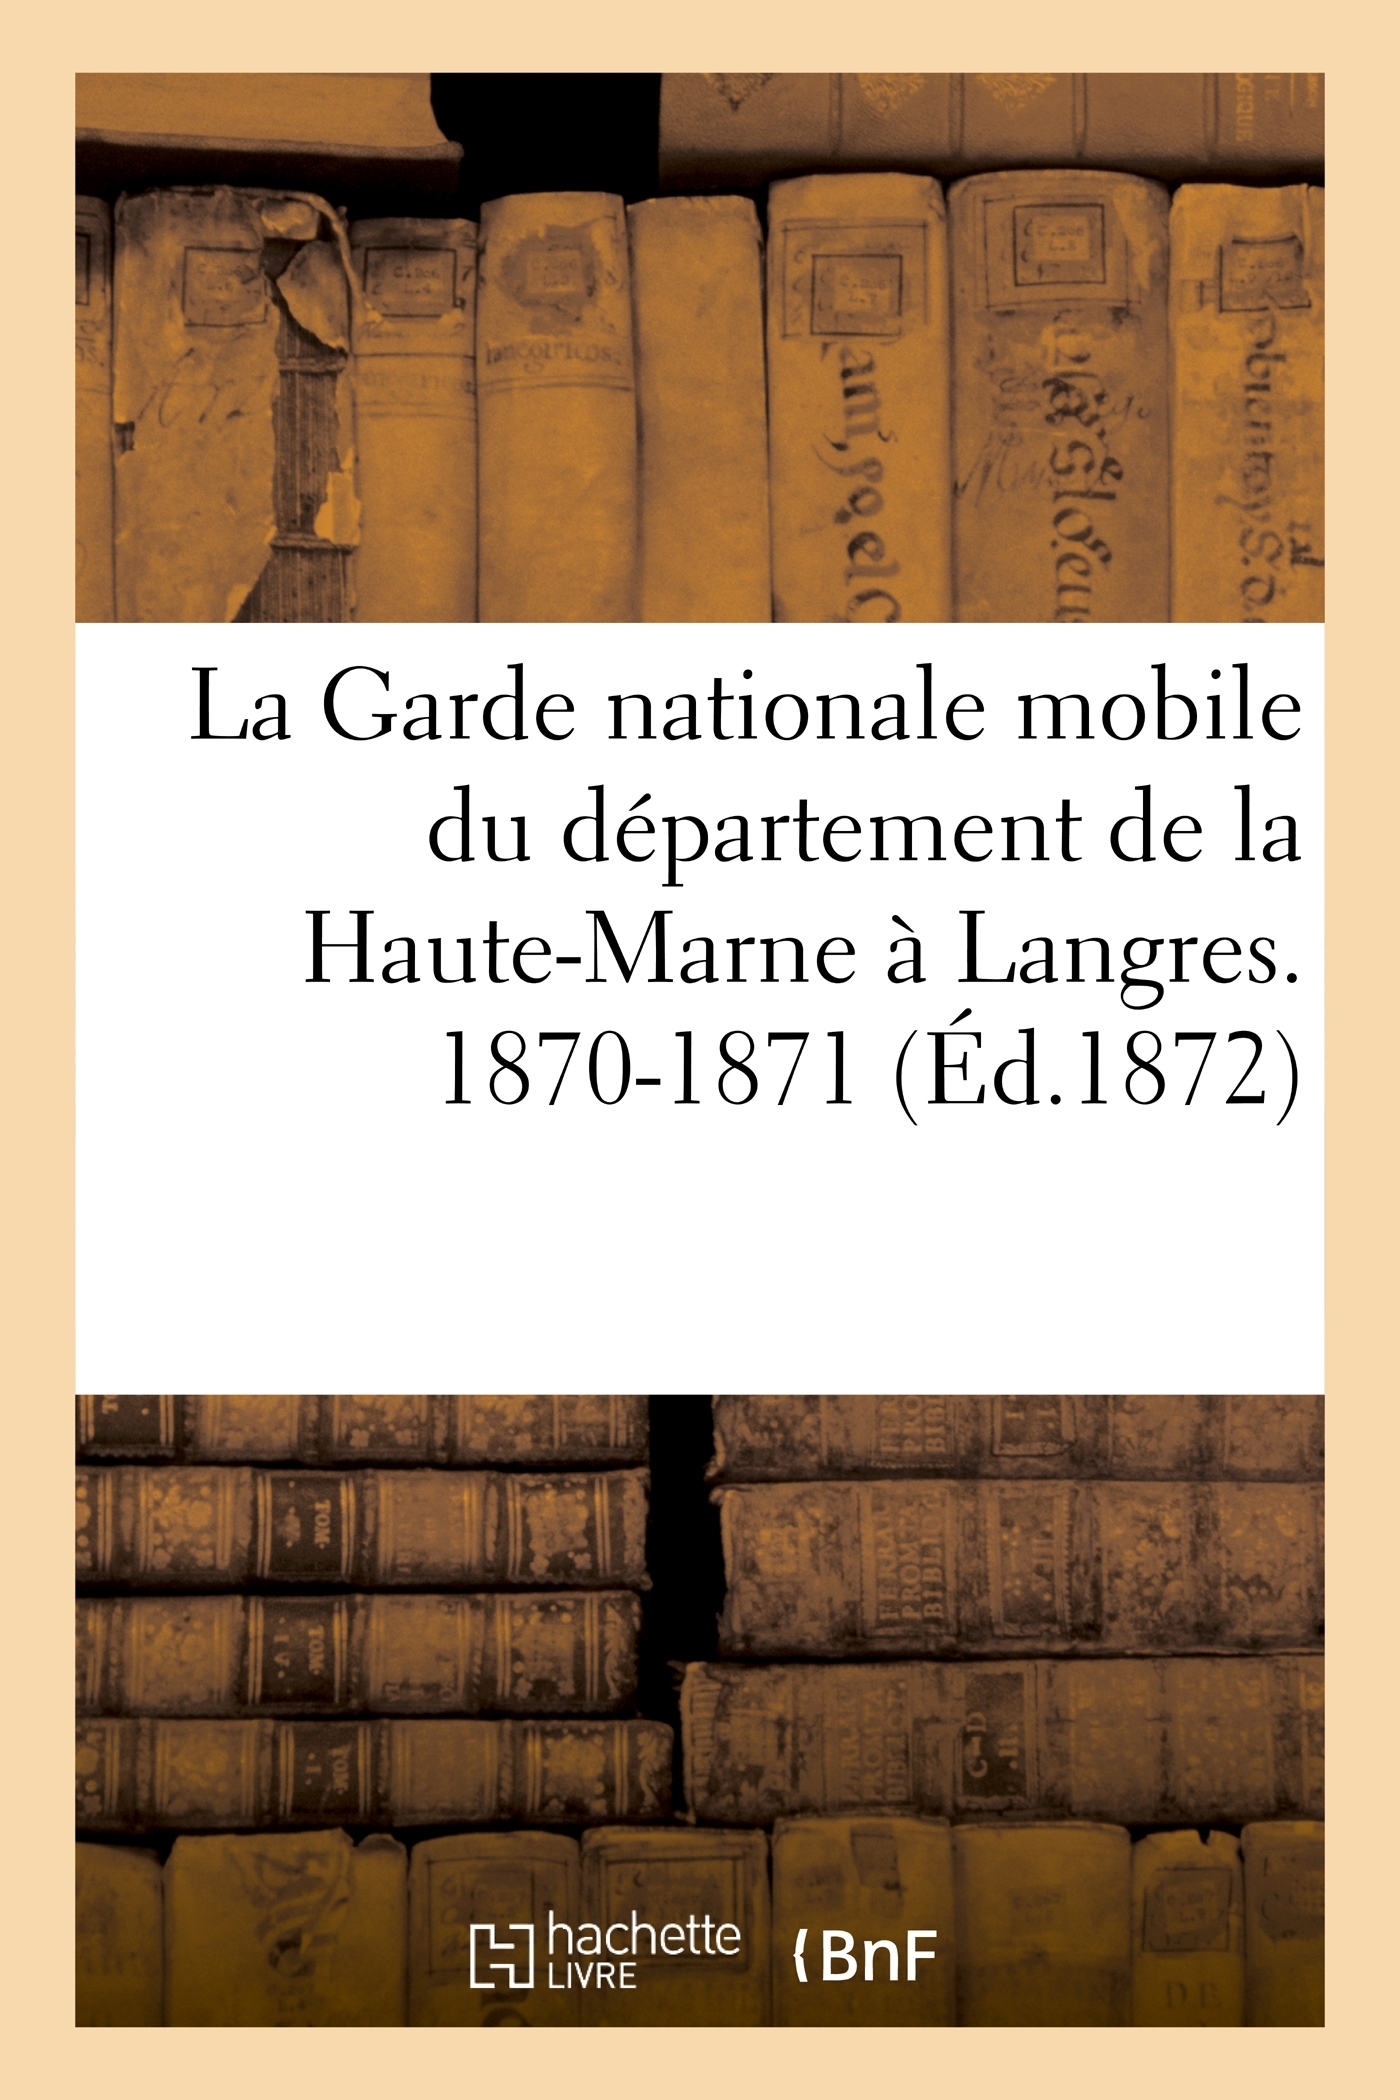 LA GARDE NATIONALE MOBILE DU DEPARTEMENT DE LA HAUTE-MARNE A LANGRES. 1870-1871